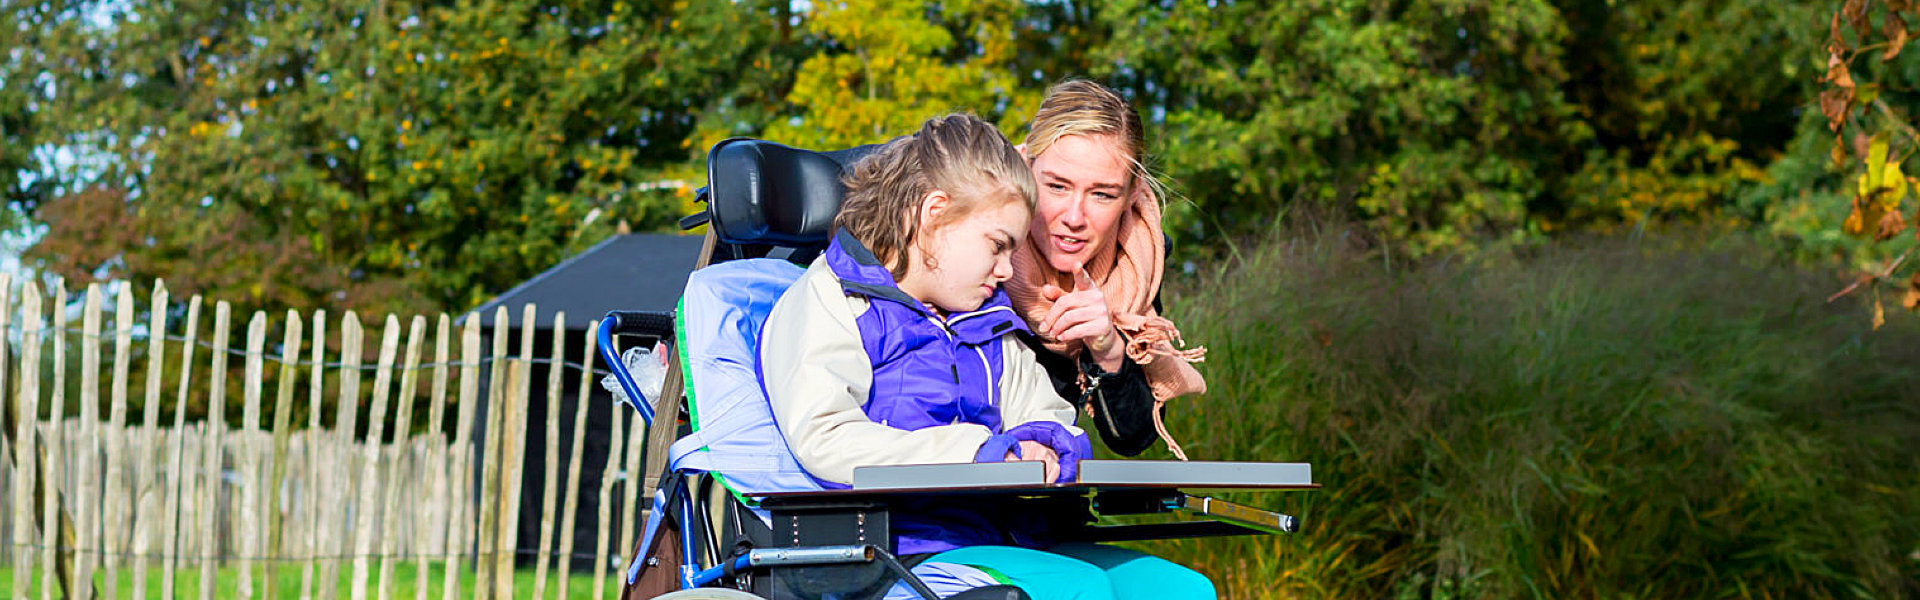 disabled kid with her sister